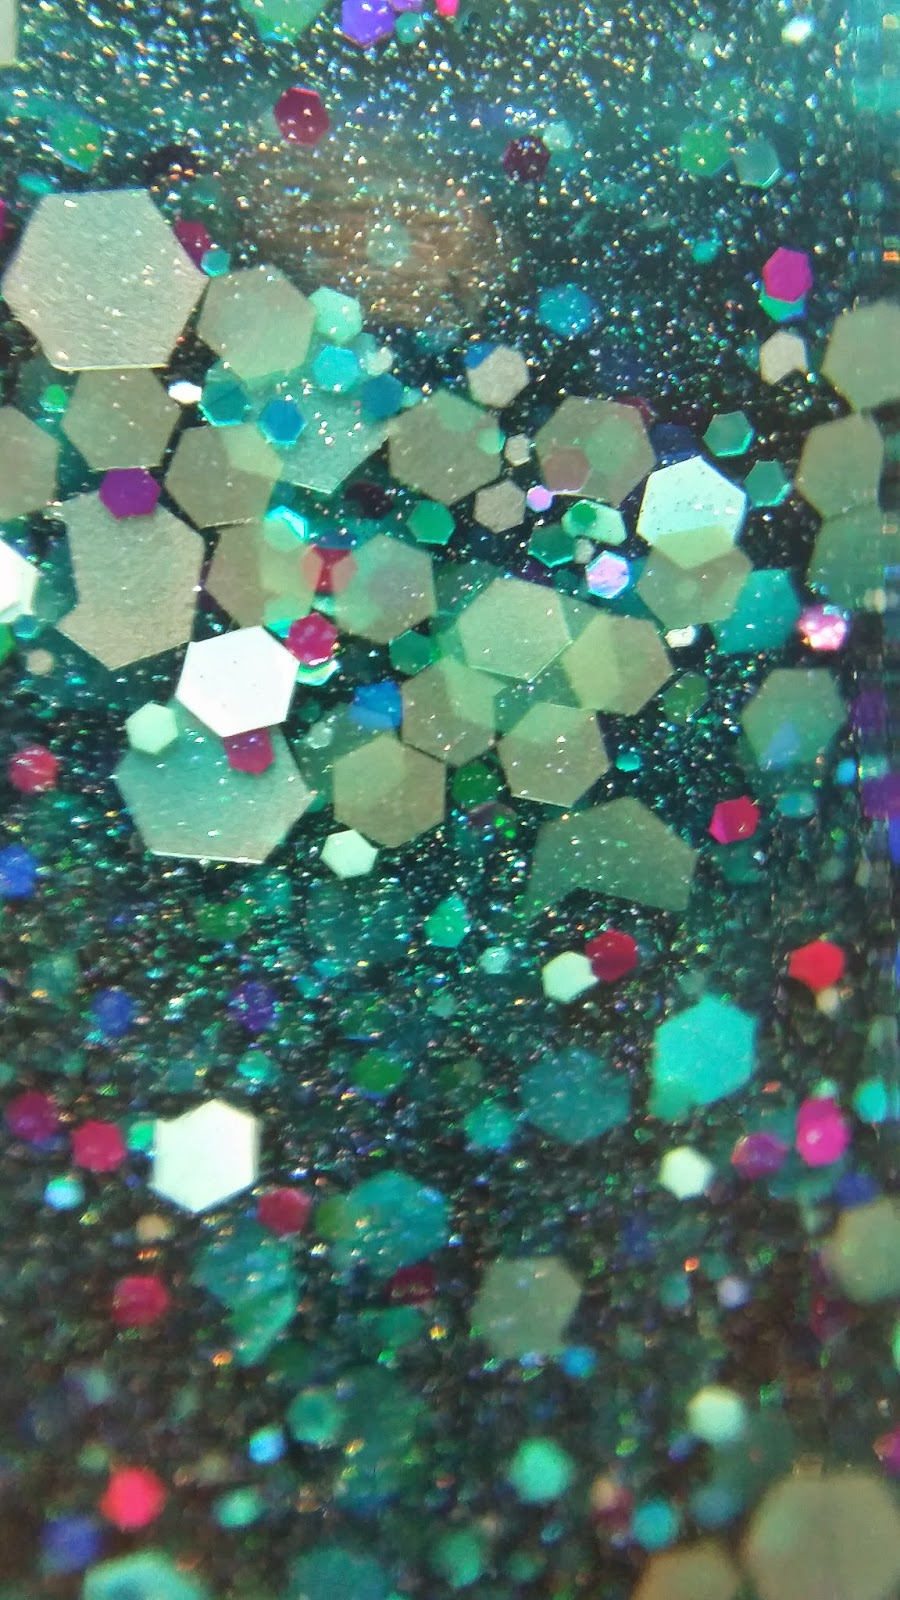 Glitter macros for your phone